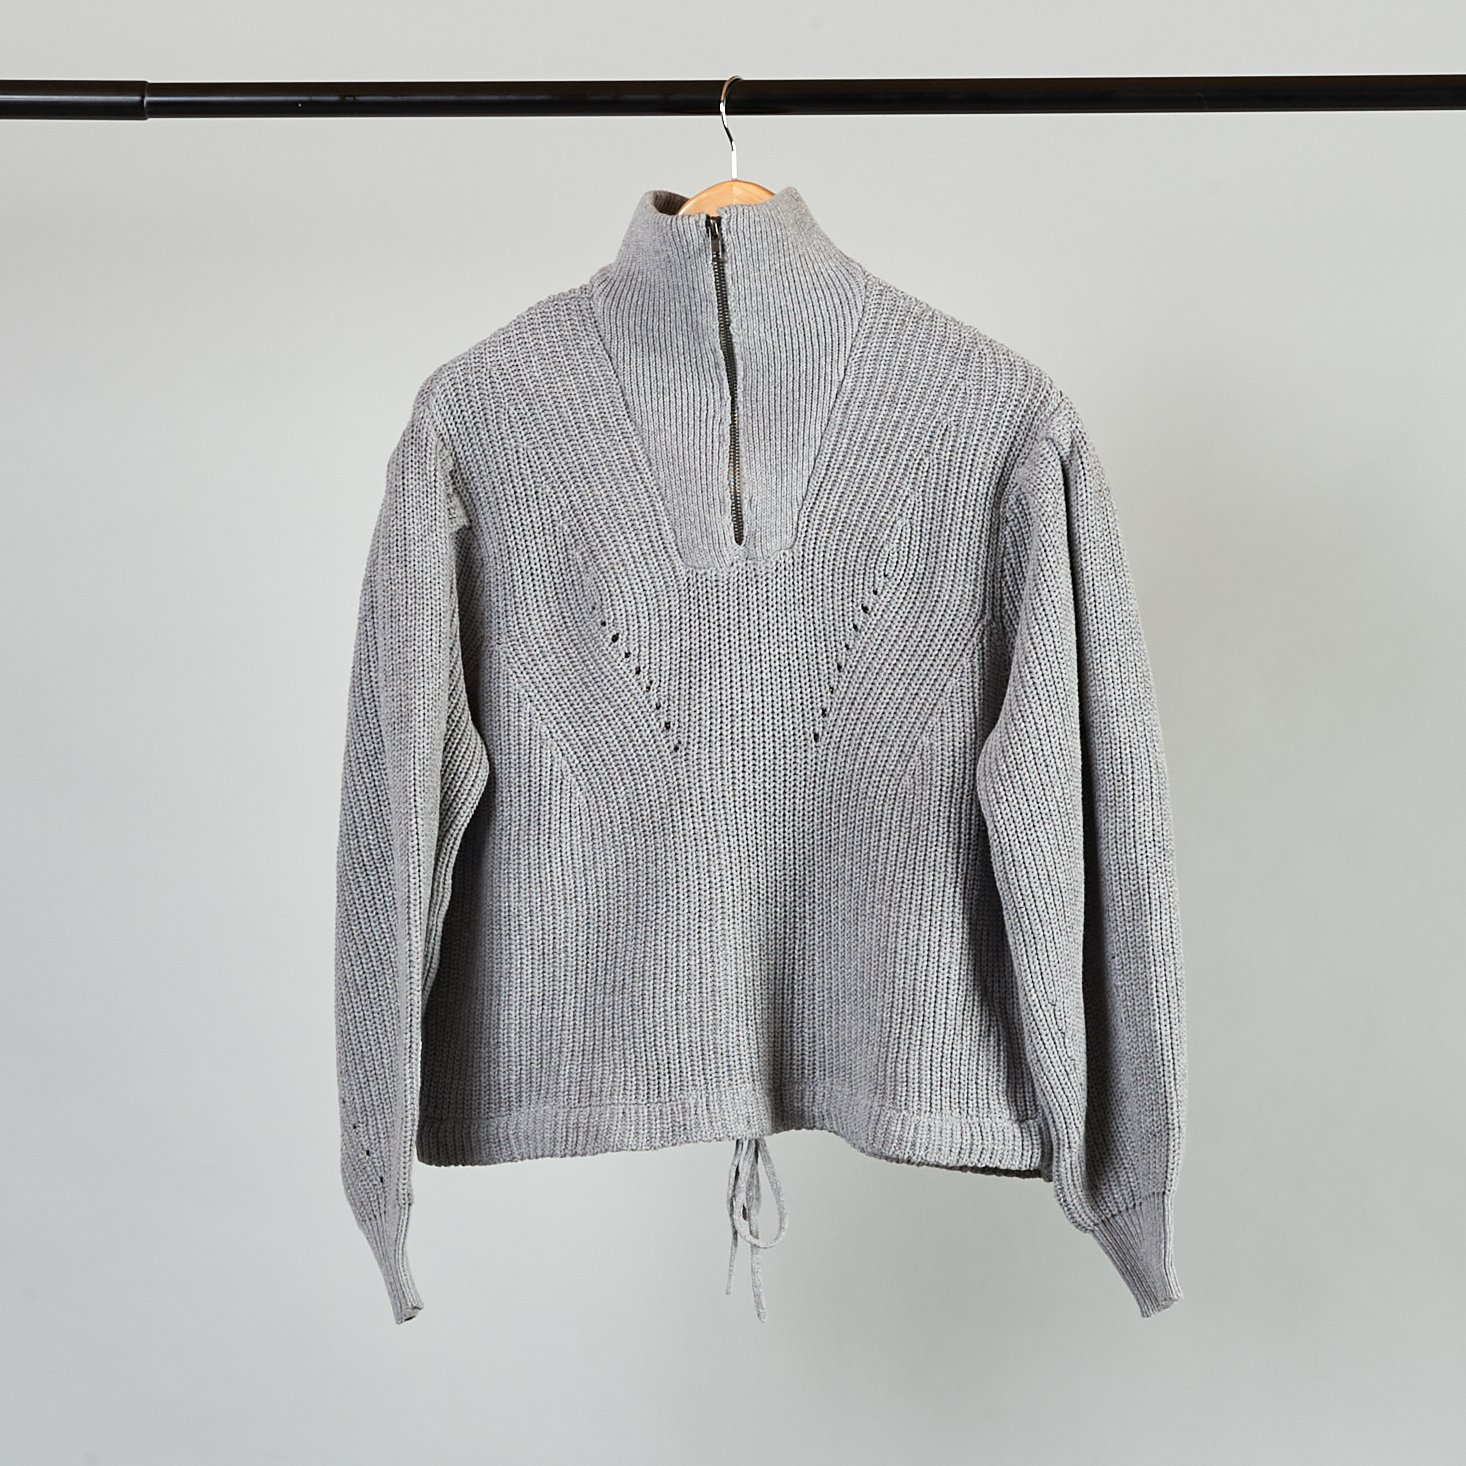 grey quarter-zip sweater from Frank and Oak